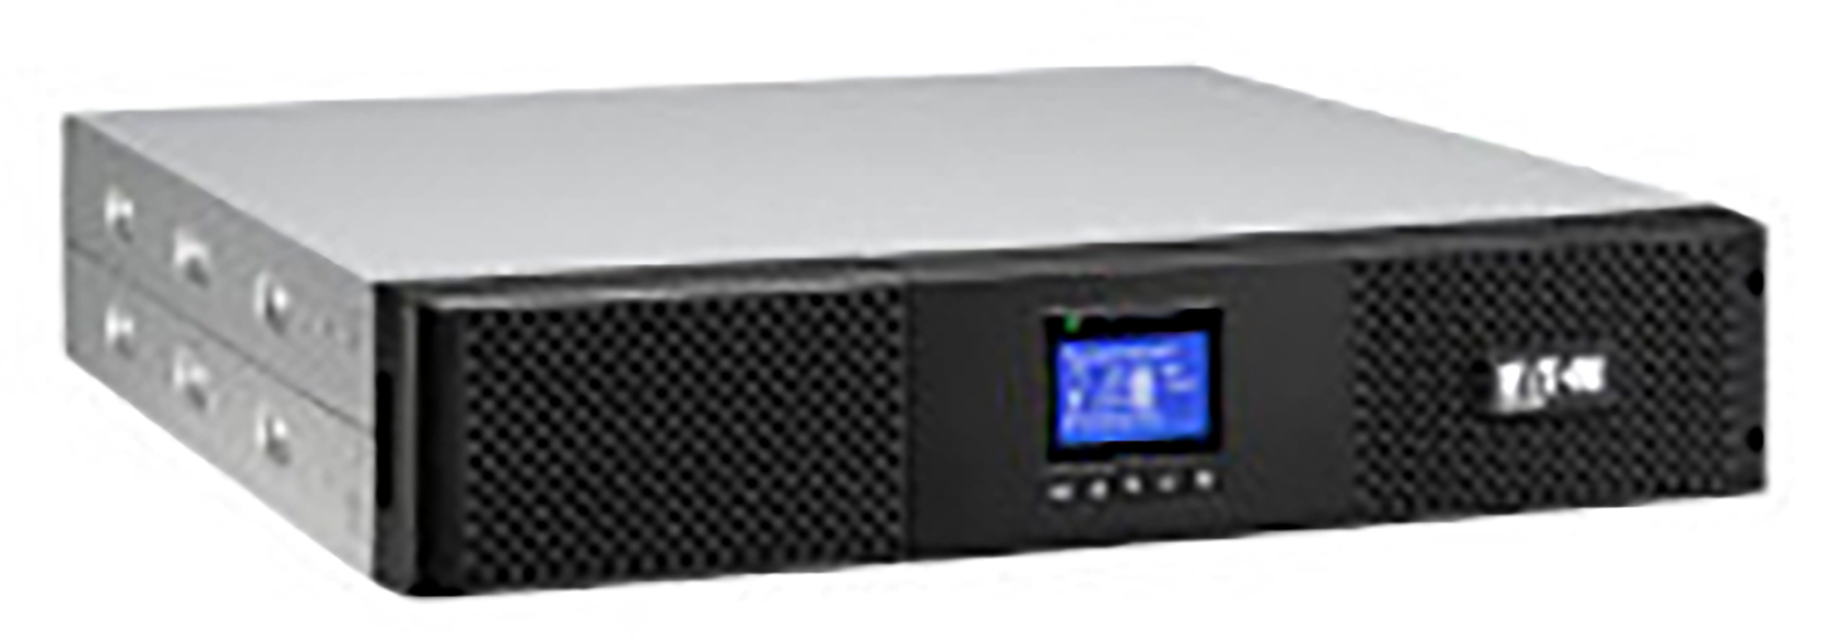 EATON 9SX1500IR 9SX UNINTERRUPTIBLE POWER SUPPLY (UPS) 1500 VA 7 AC OUTLET(S) DOUBLE-CONVERSION (ONLINE)